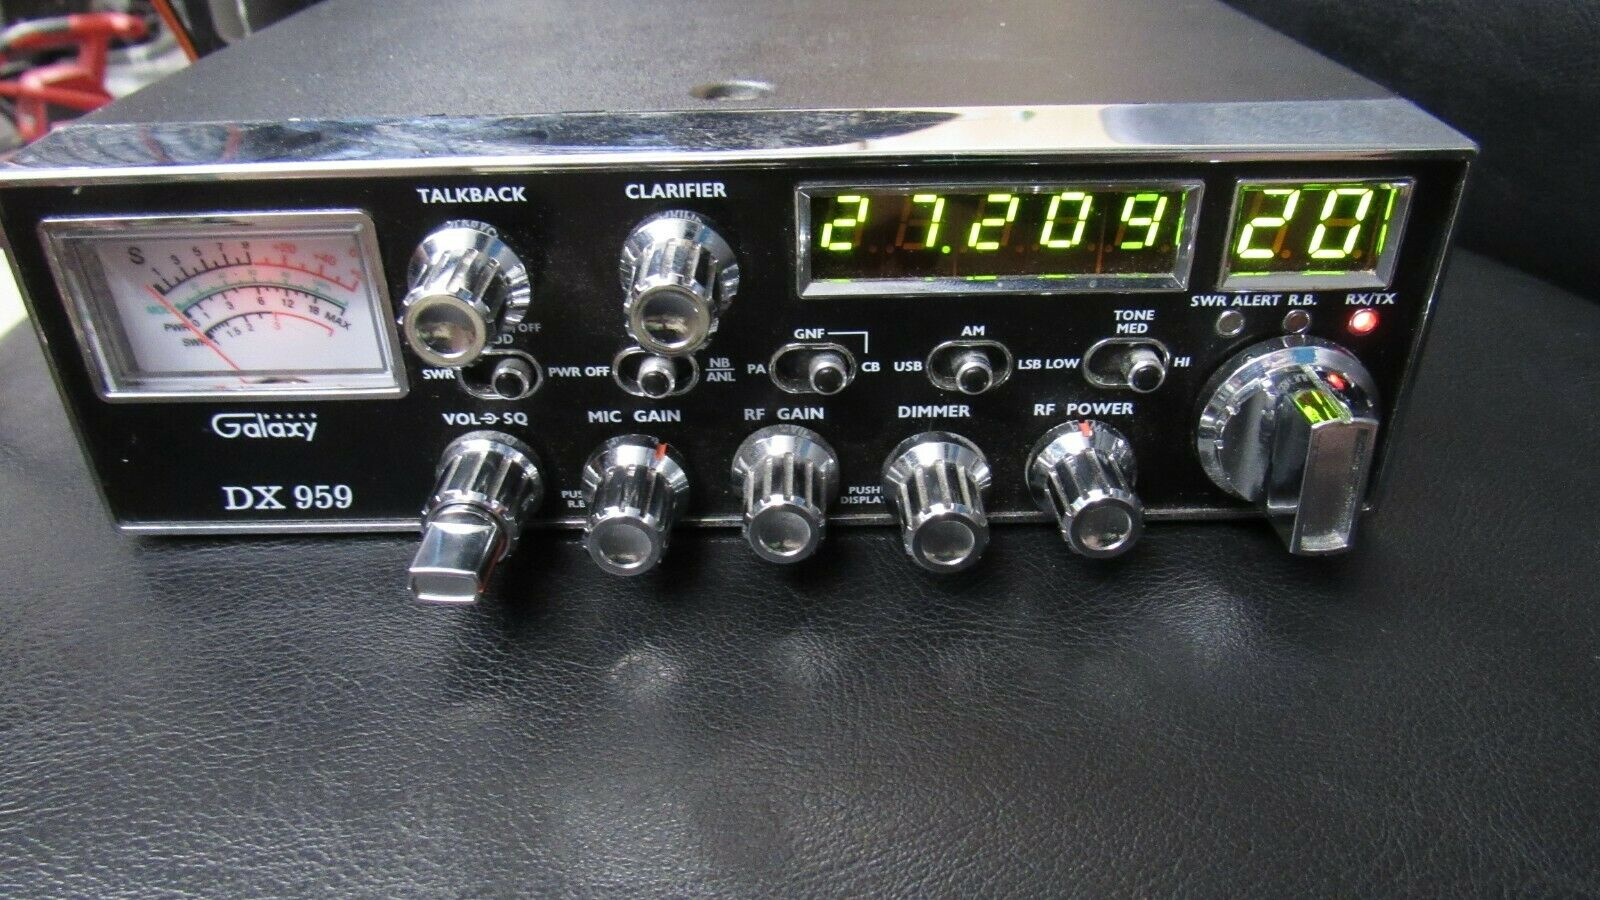 Galaxy DX 959 CB Radio AM/SSB 40 Chan. With Mic Tested Working. Available Now for 199.99